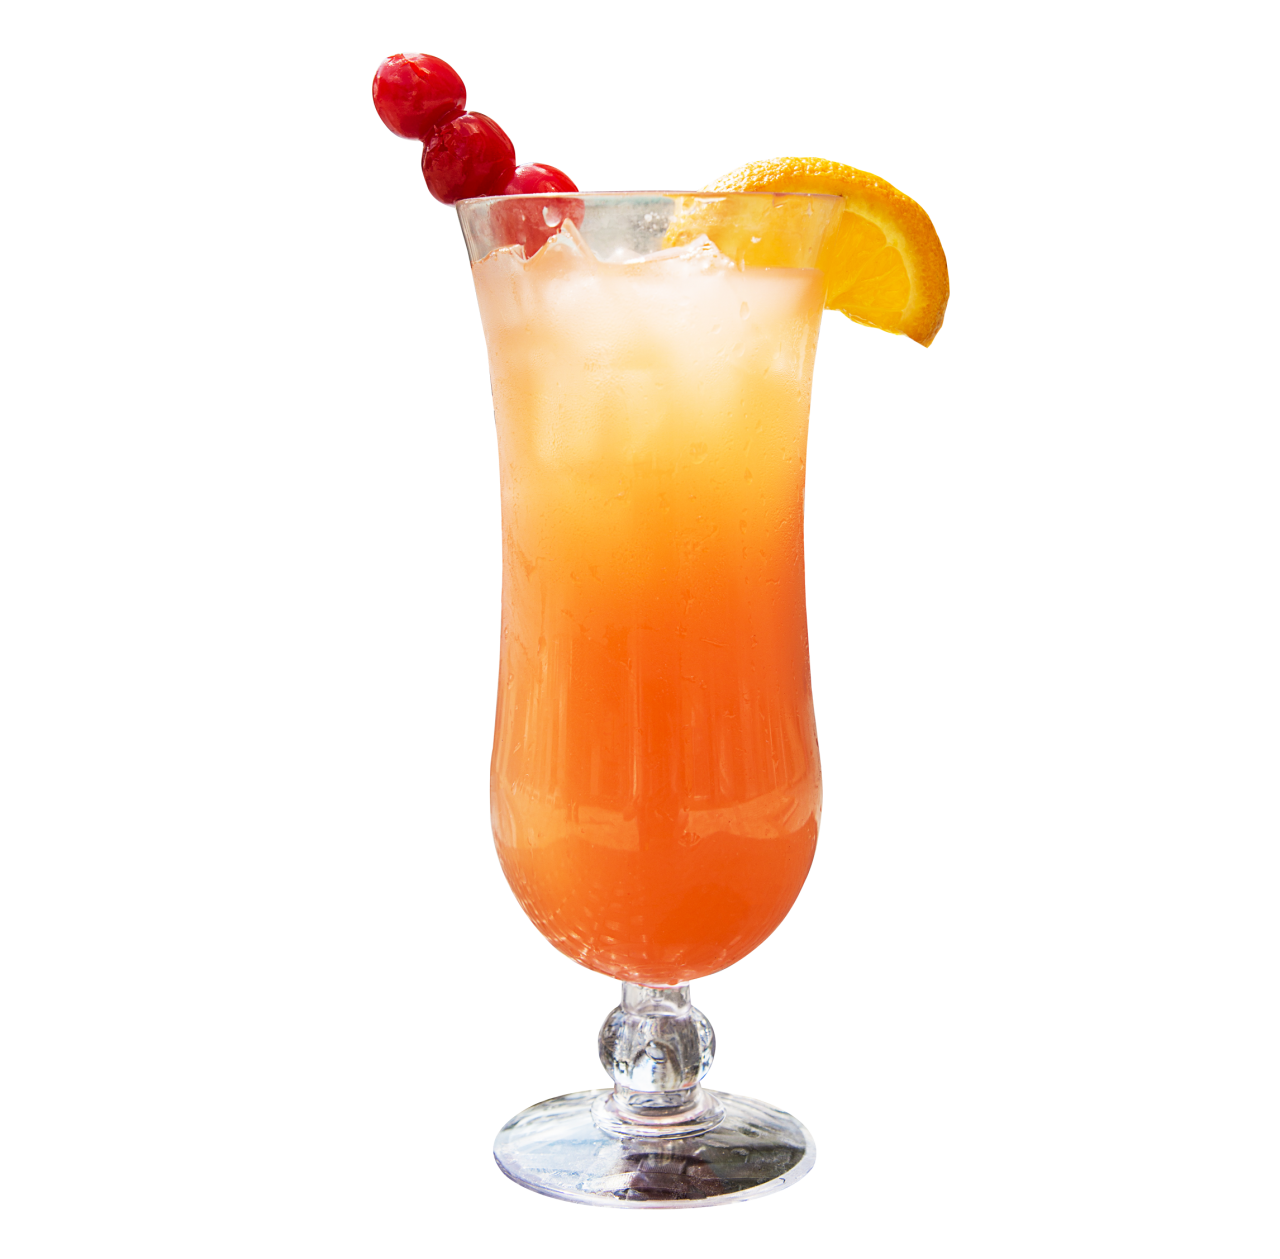 Cocktail Glass PNG Image